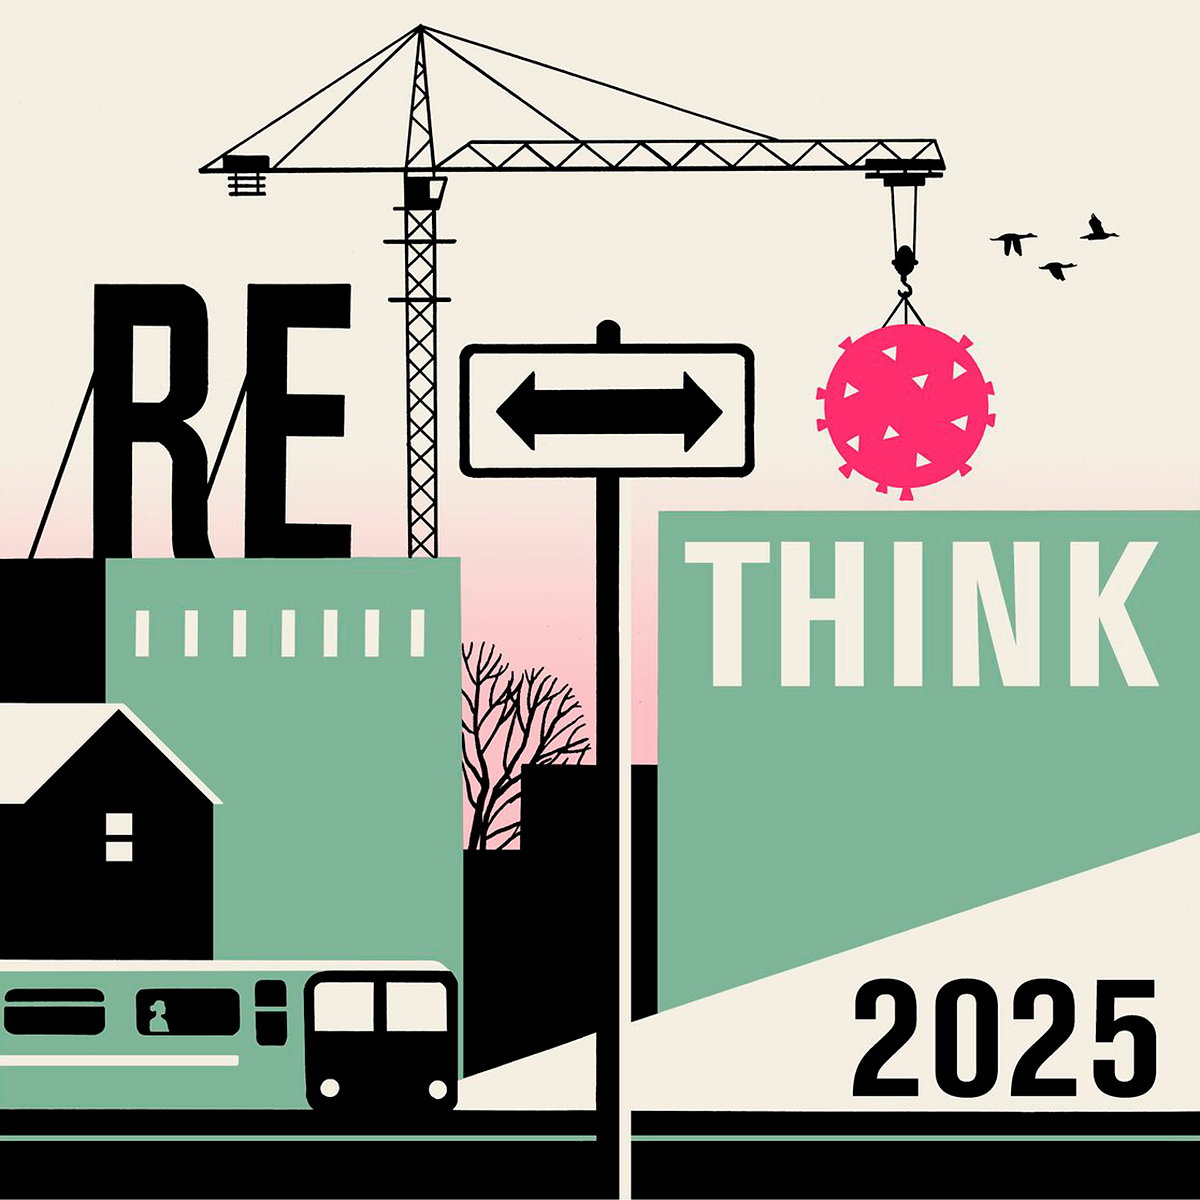 RIBA Launches 'RETHINK - 2025' Design Competition